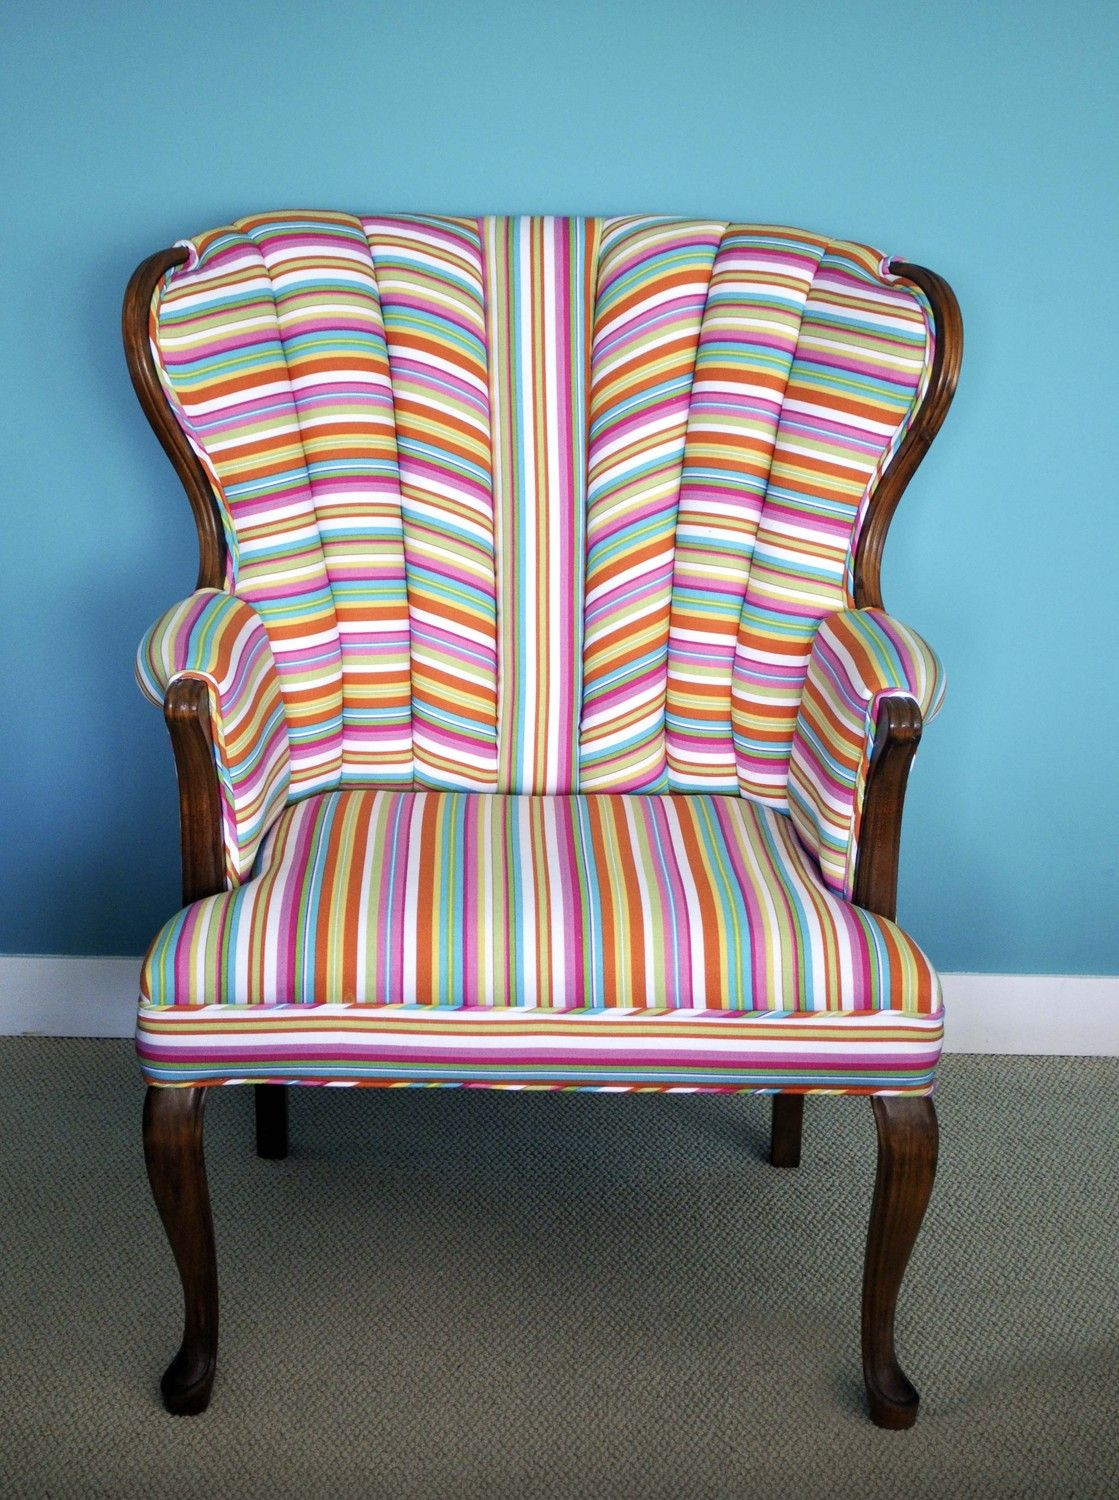 Vintage upholstered chair - Vintage Modern Candy Stripe Upholstered Chair